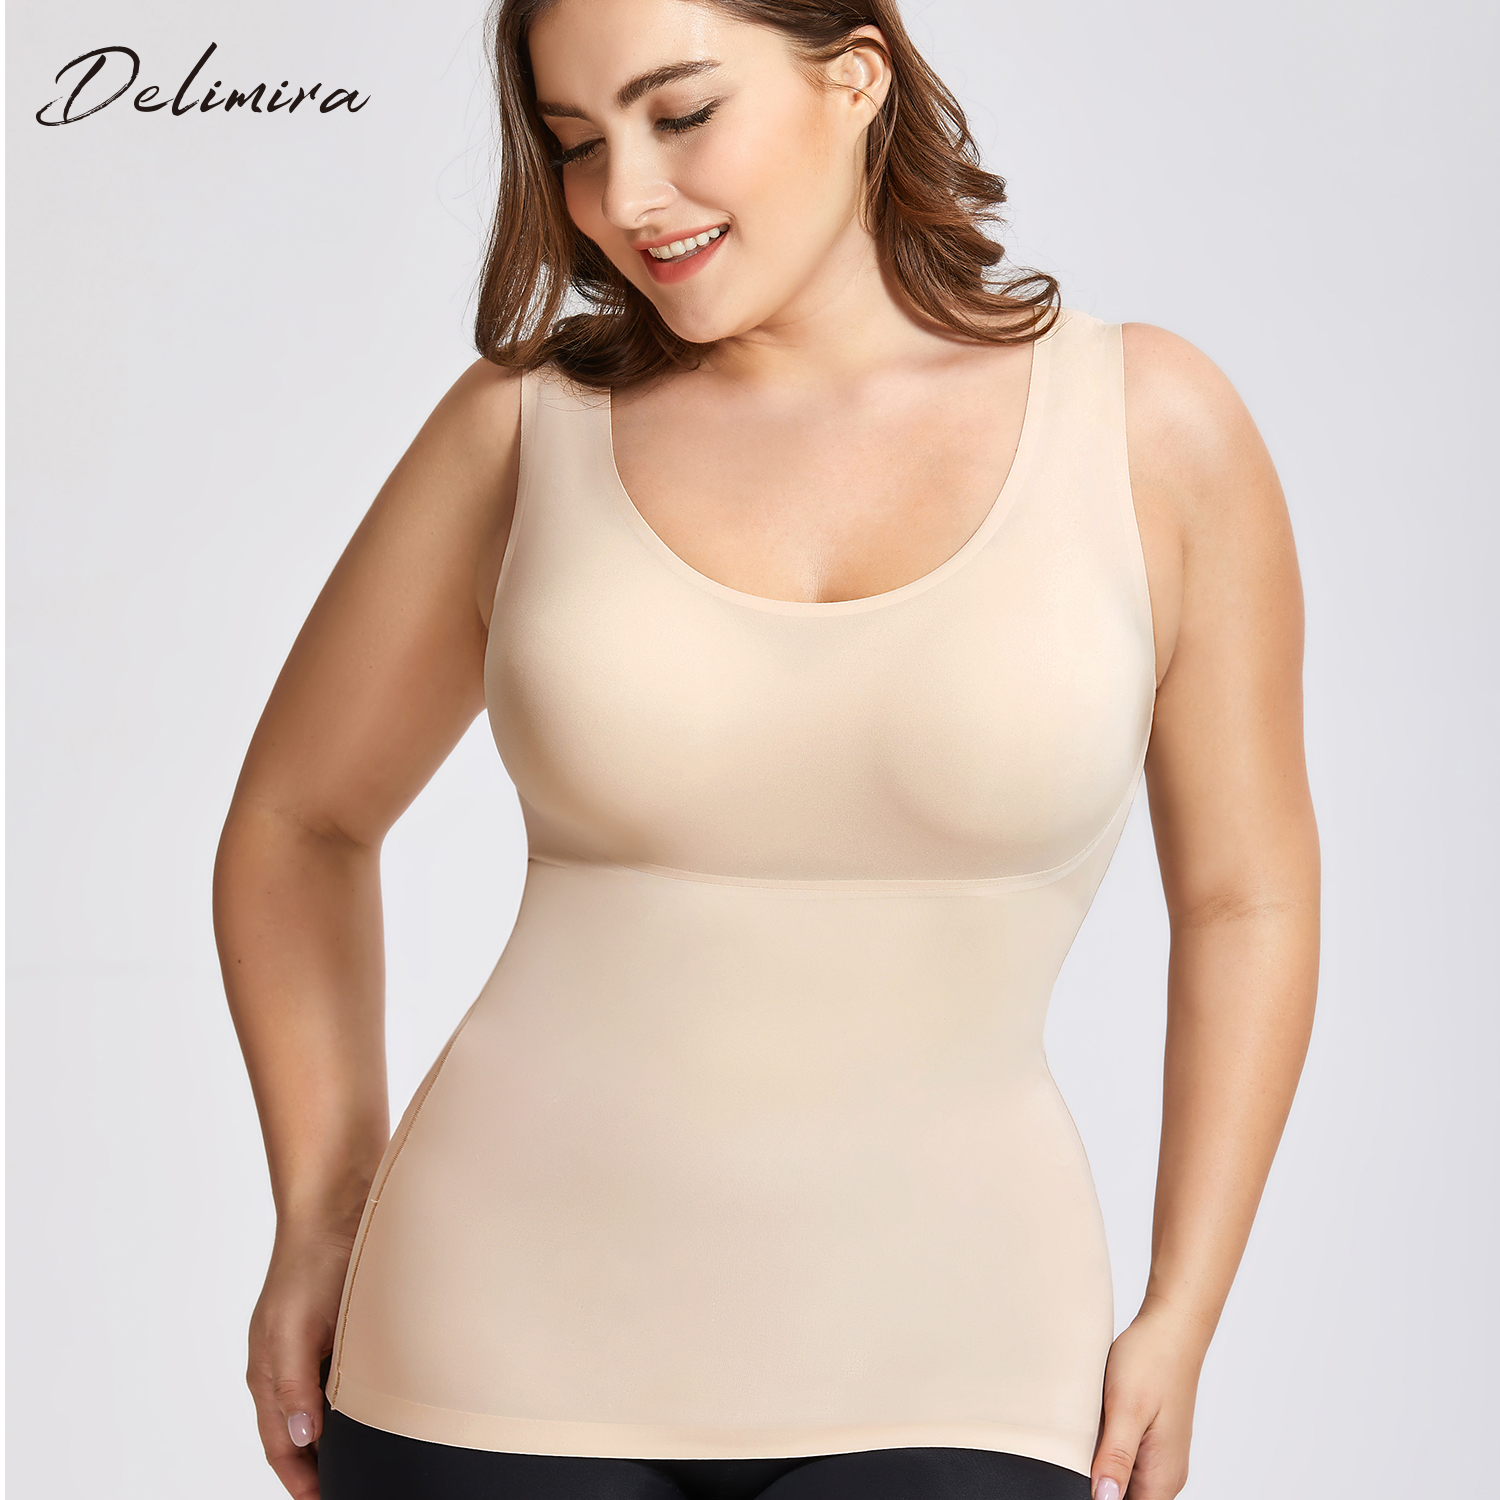 DELIMIRA Women's Plus Size Tummy Control Shapewear Smooth Body Shaping Camisole Basic Tank Tops